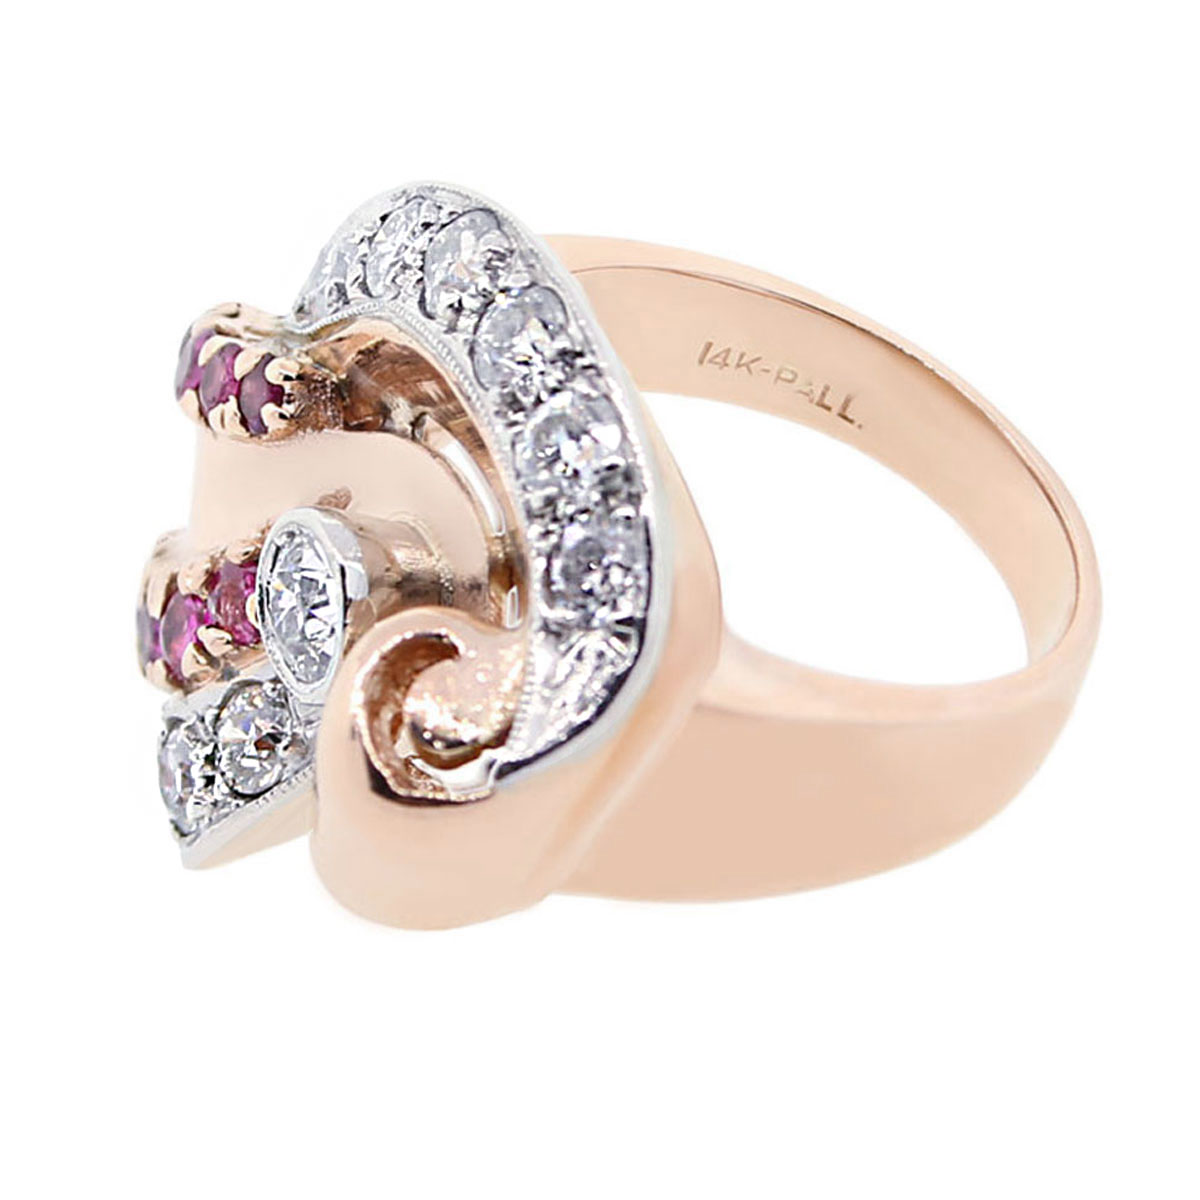 14k rose gold diamond ruby deco ring. Black Bedroom Furniture Sets. Home Design Ideas